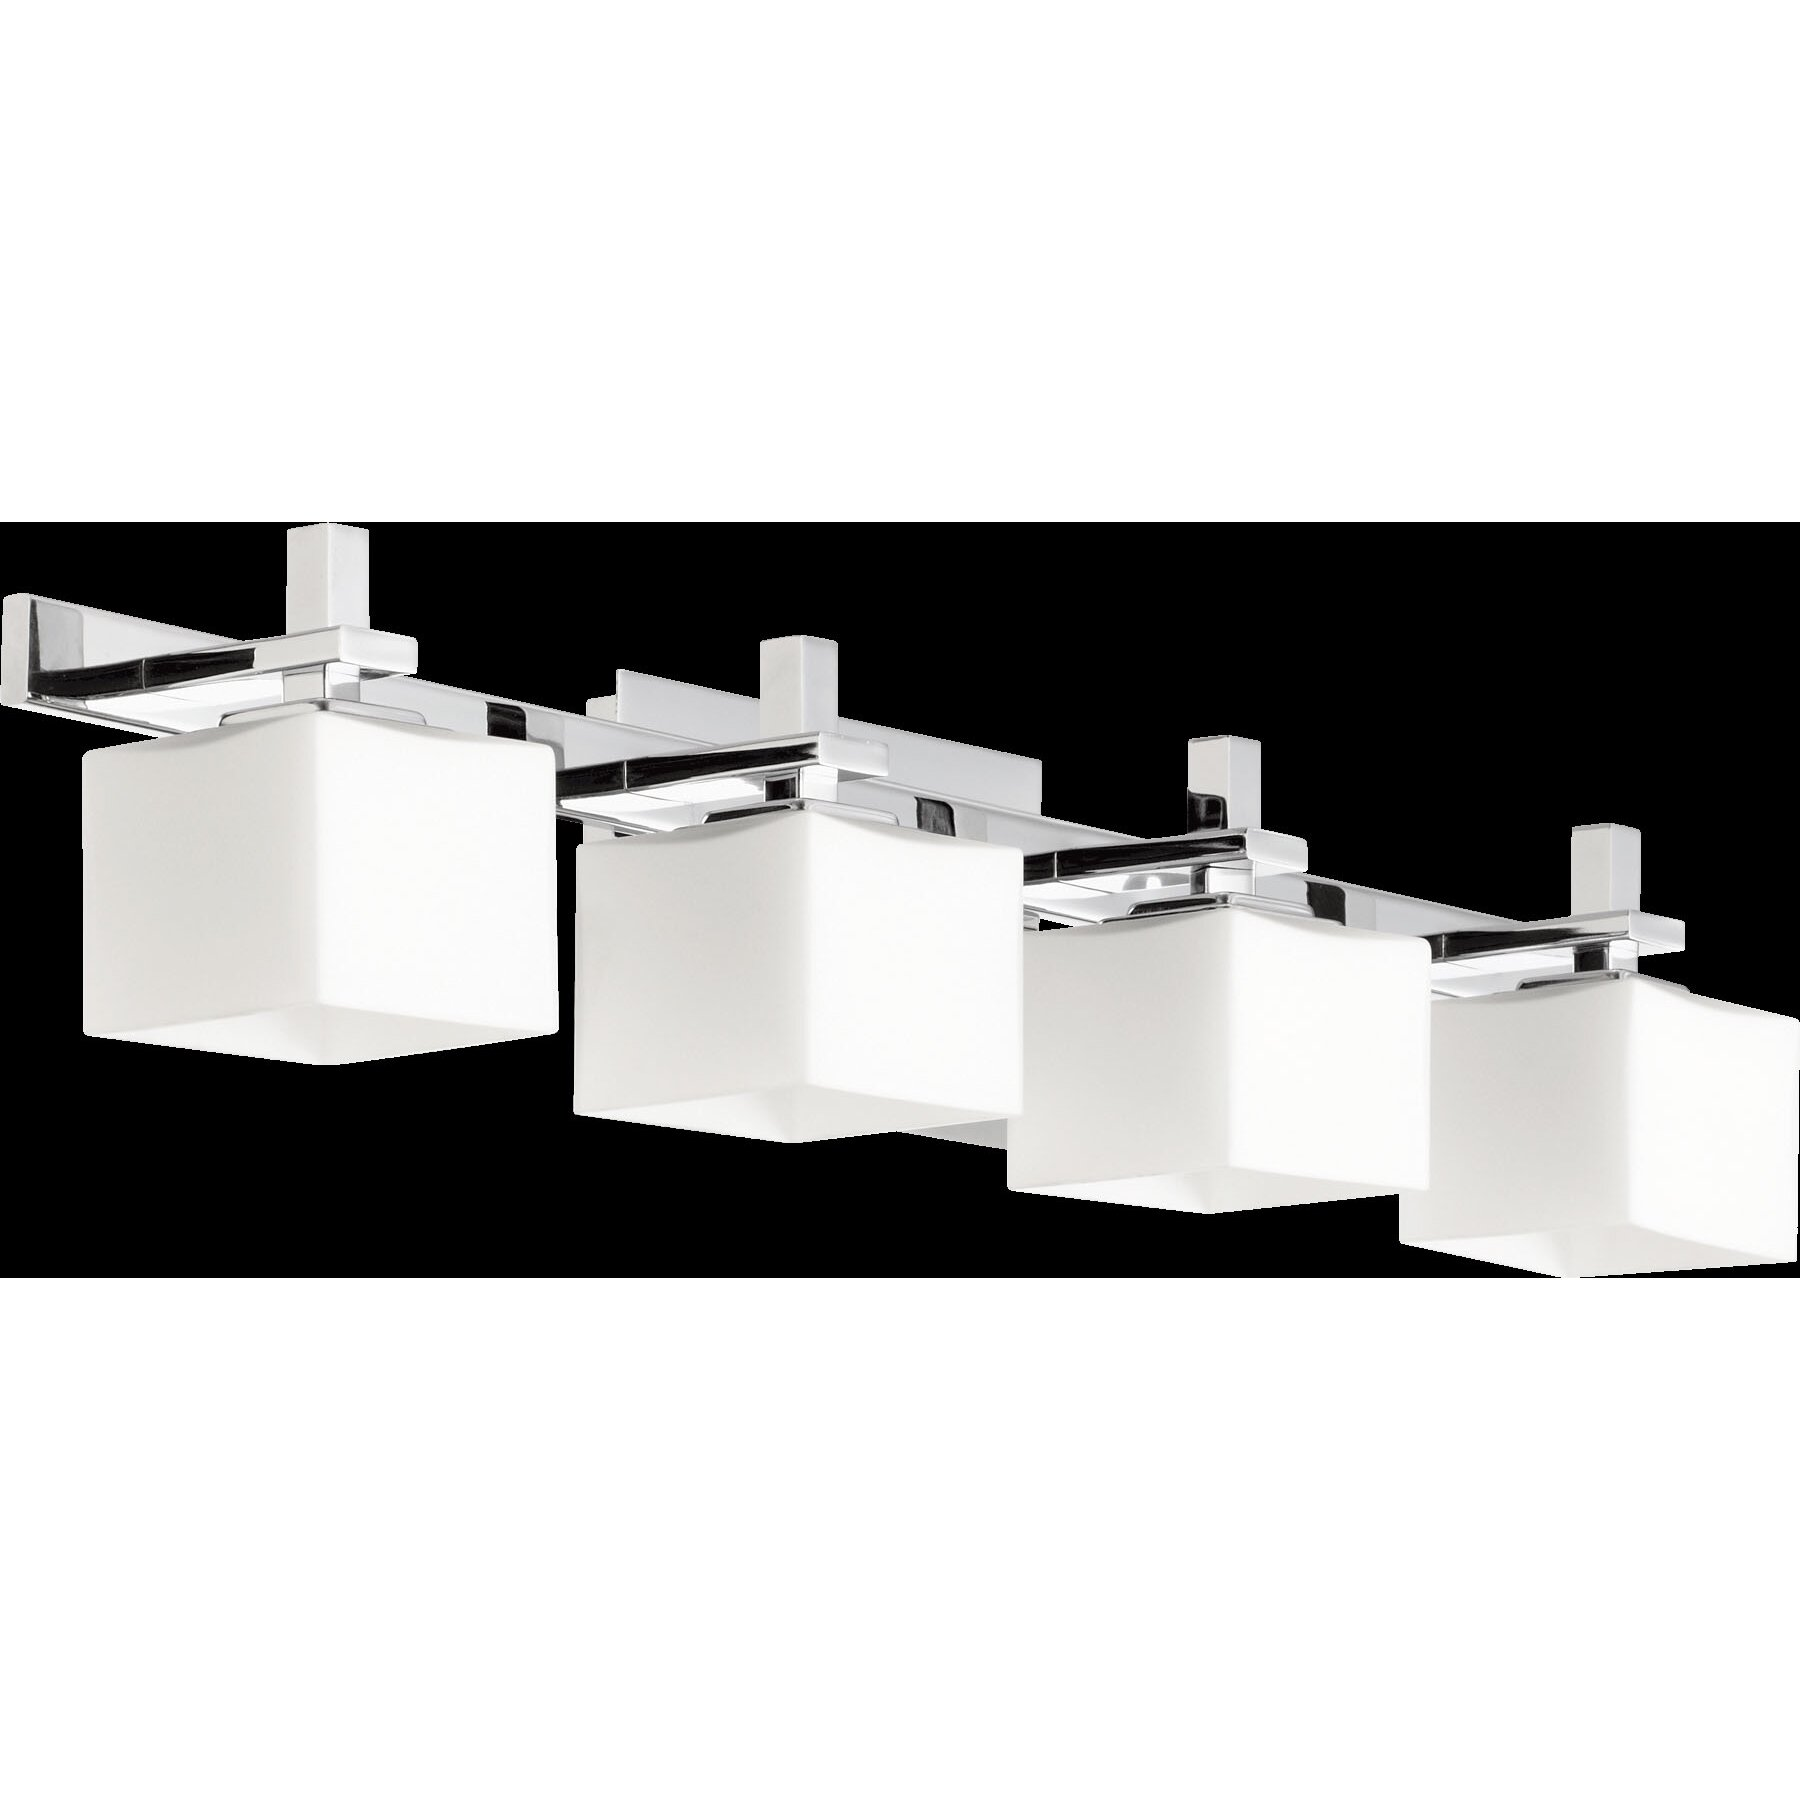 Quorum Vanity Lights : Quorum Square 4 Light Vanity Light & Reviews Wayfair